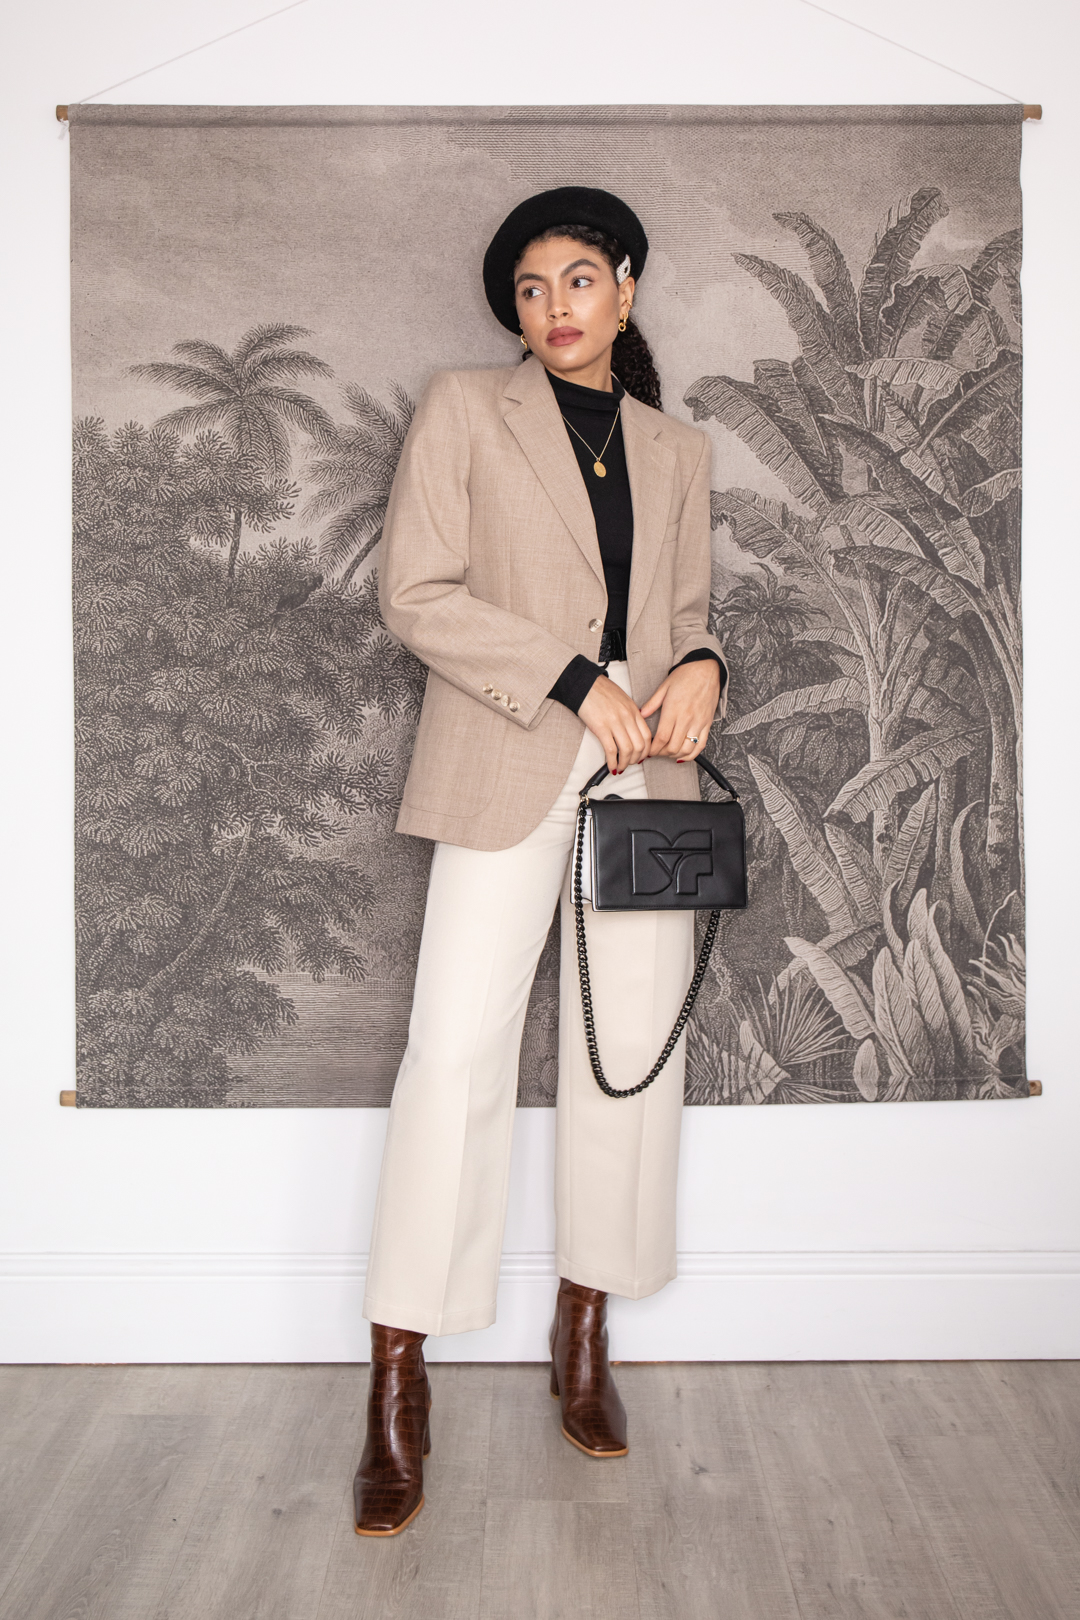 Beige trousers and oversized blazer neutral outfit with beret Samio